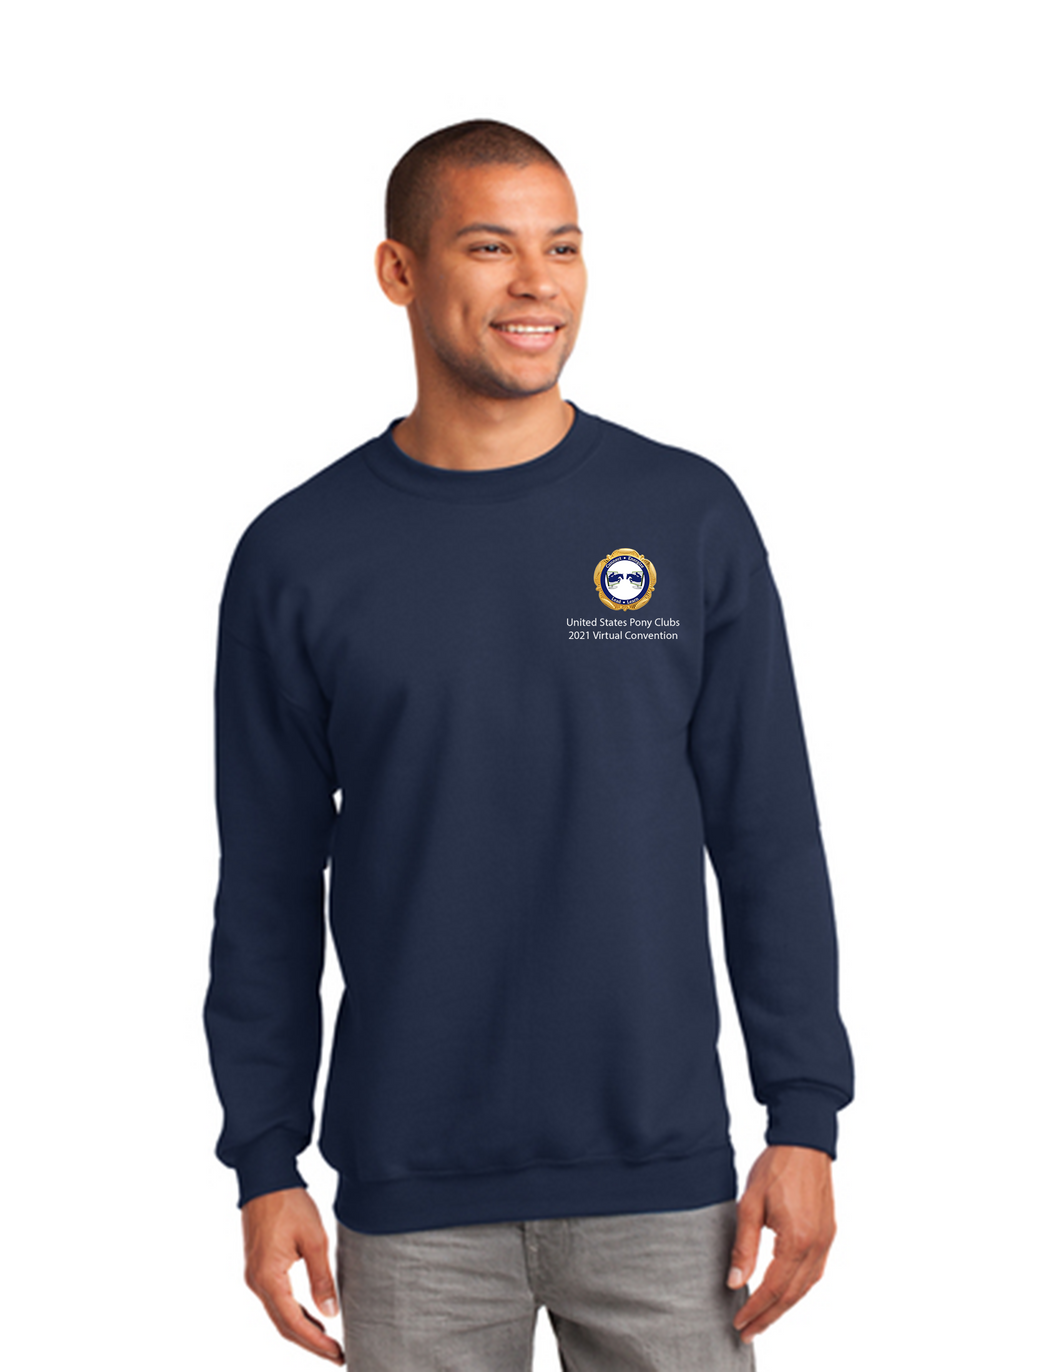 2021 USPC Virtual Convention Sweatshirt